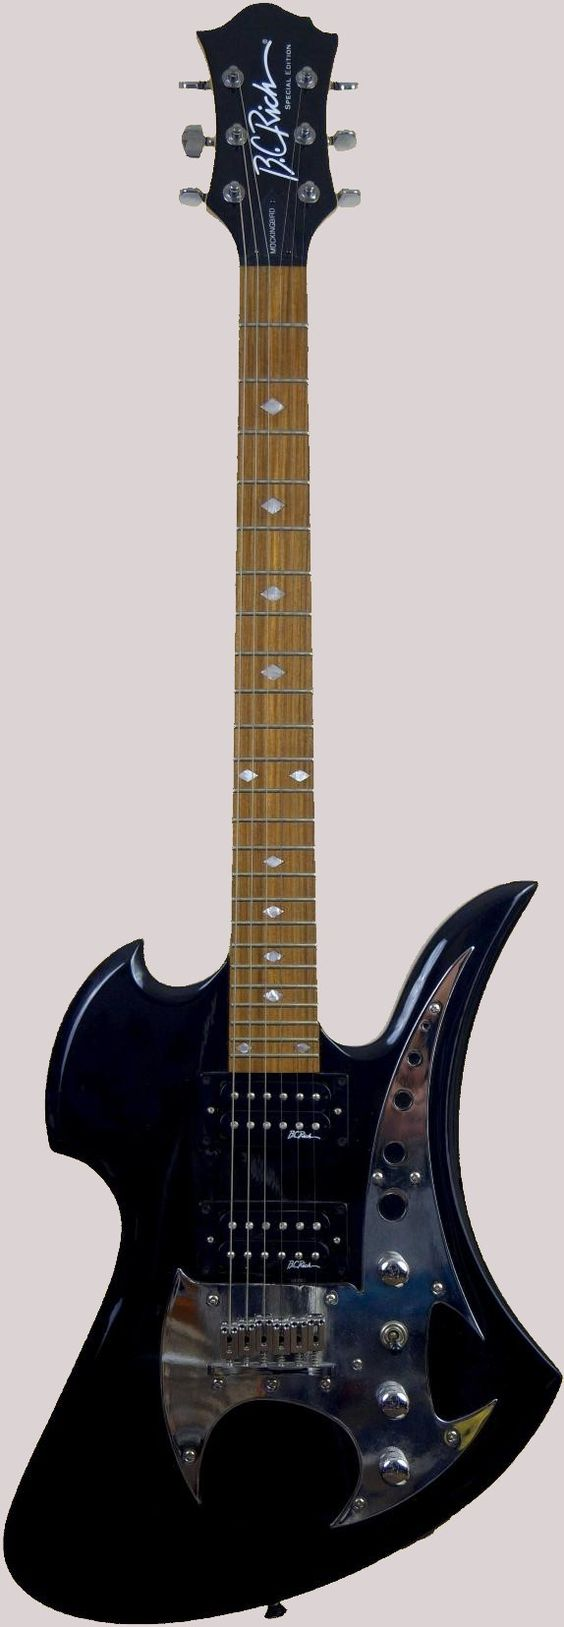 BC Rich Mockingbird evil edge